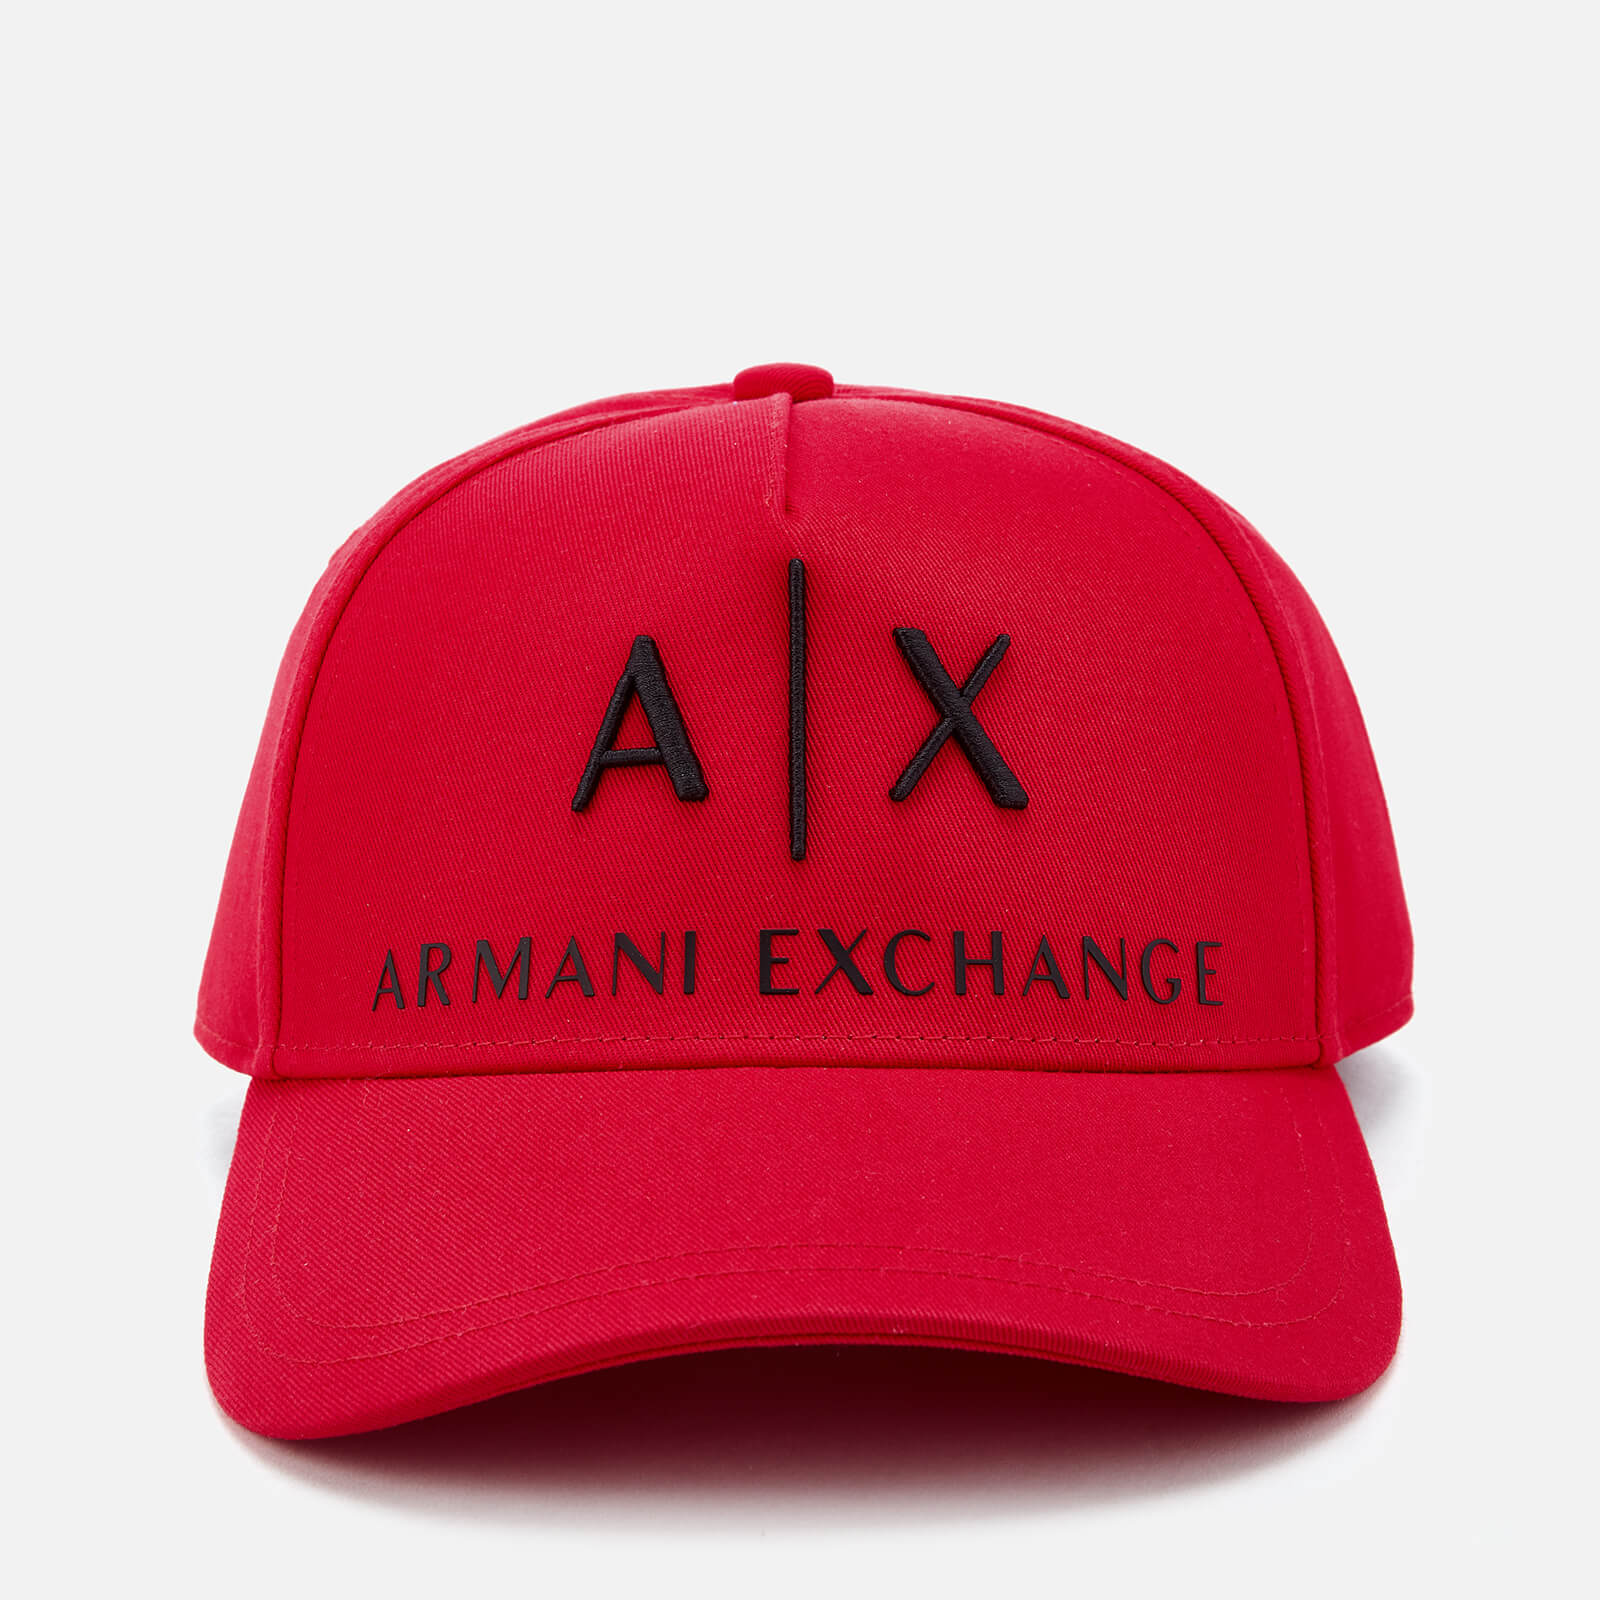 9a10d5d149bc Armani Exchange Men's Logo Cap - Absolute Red